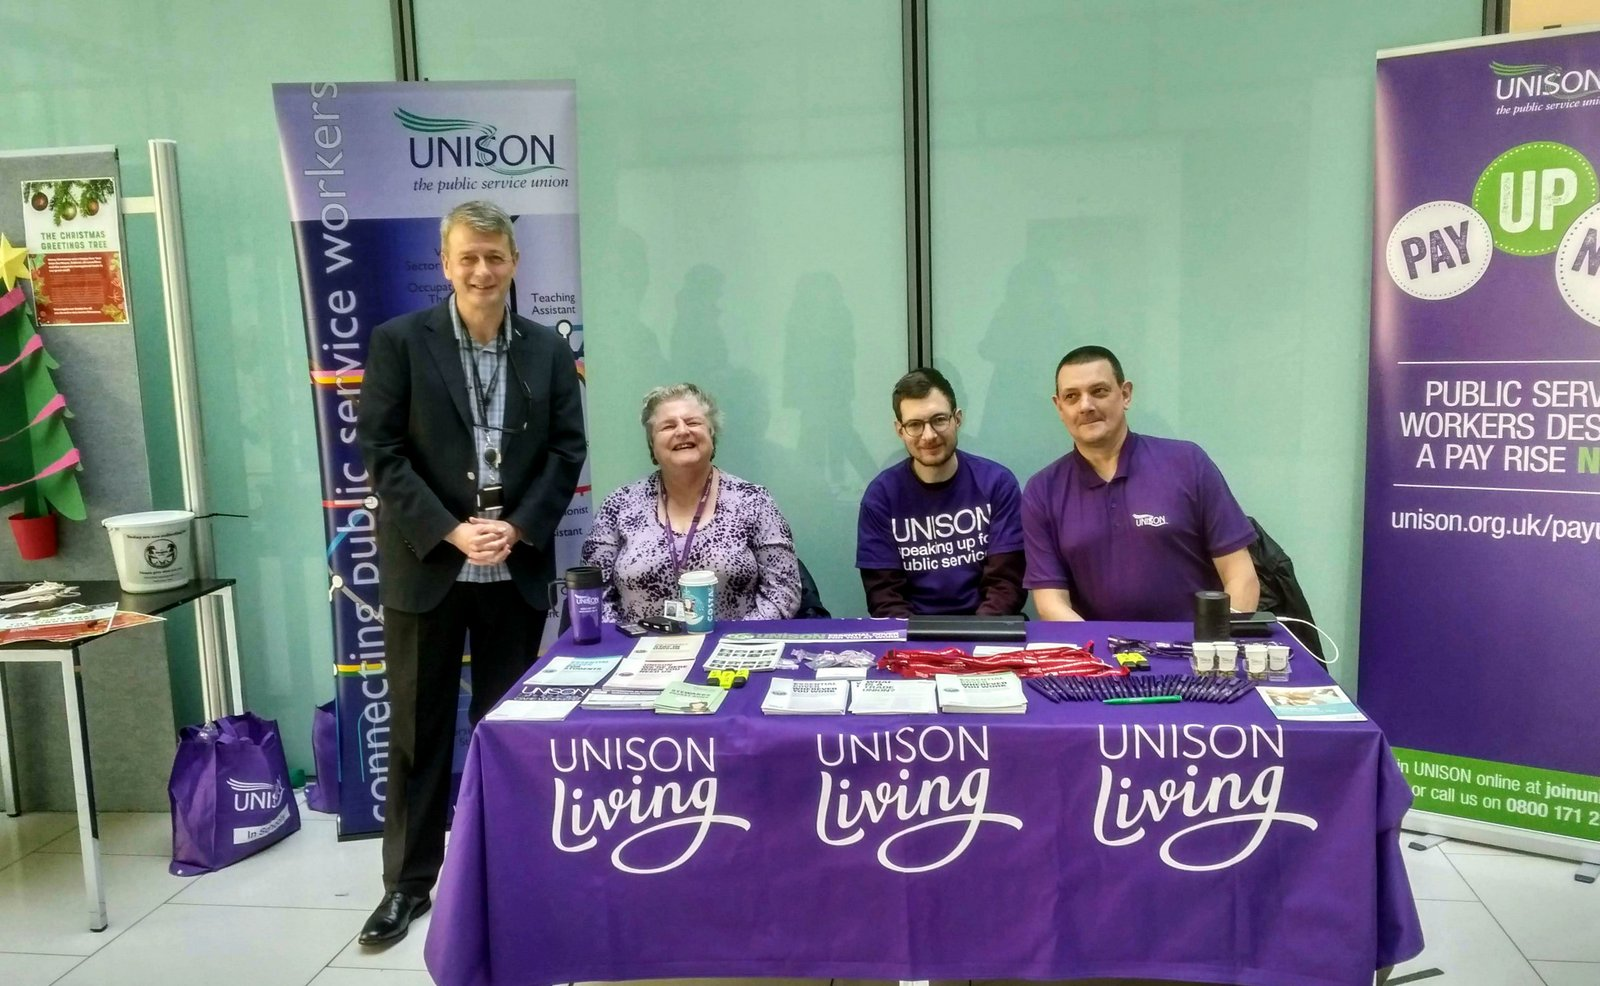 John's Labour blog: Showing solidarity at UNISON stall